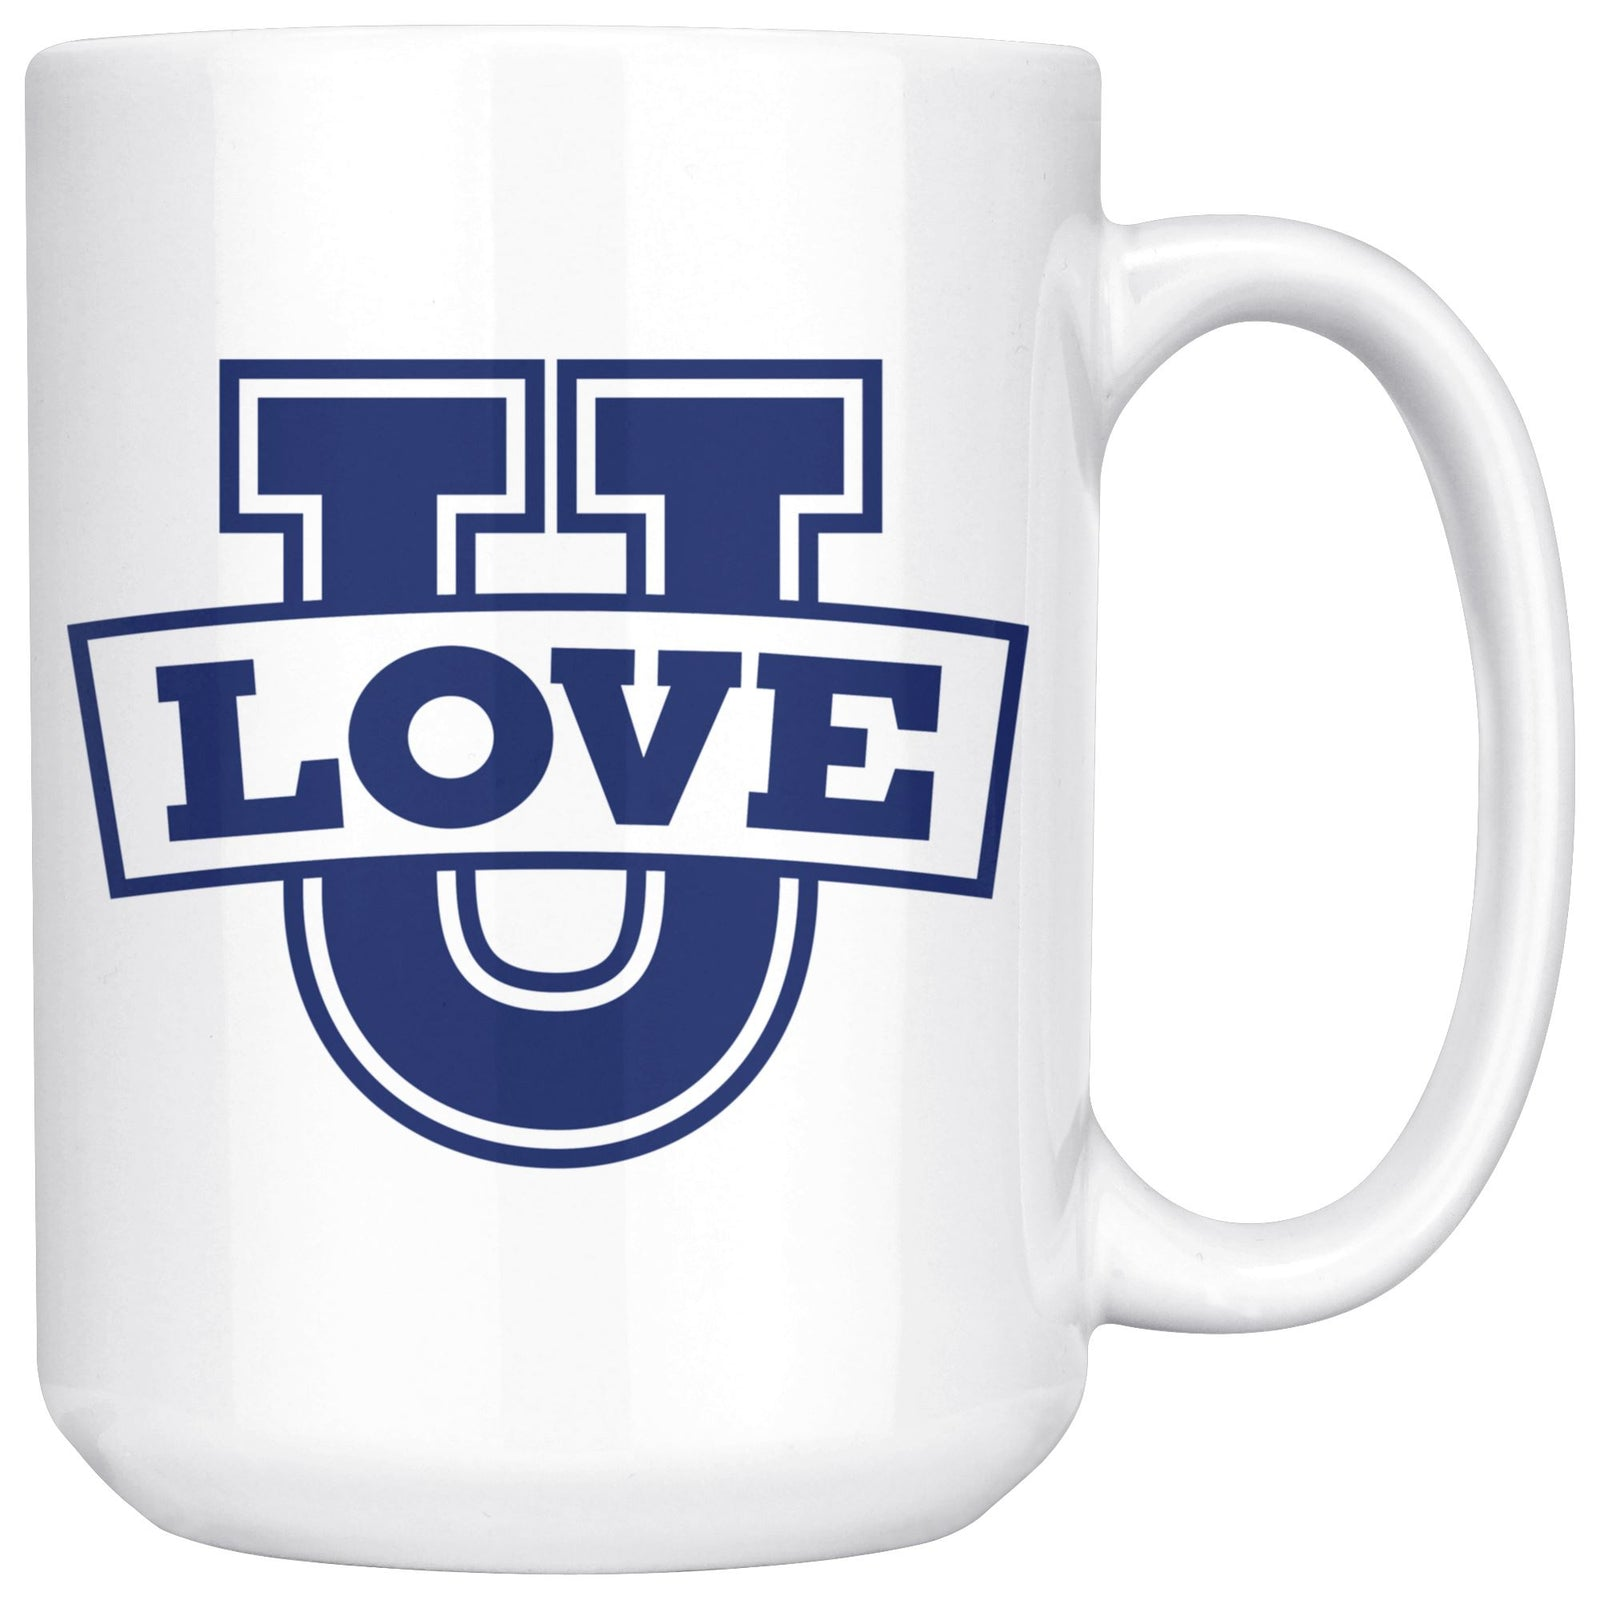 Love U 15oz Large Coffee Mug